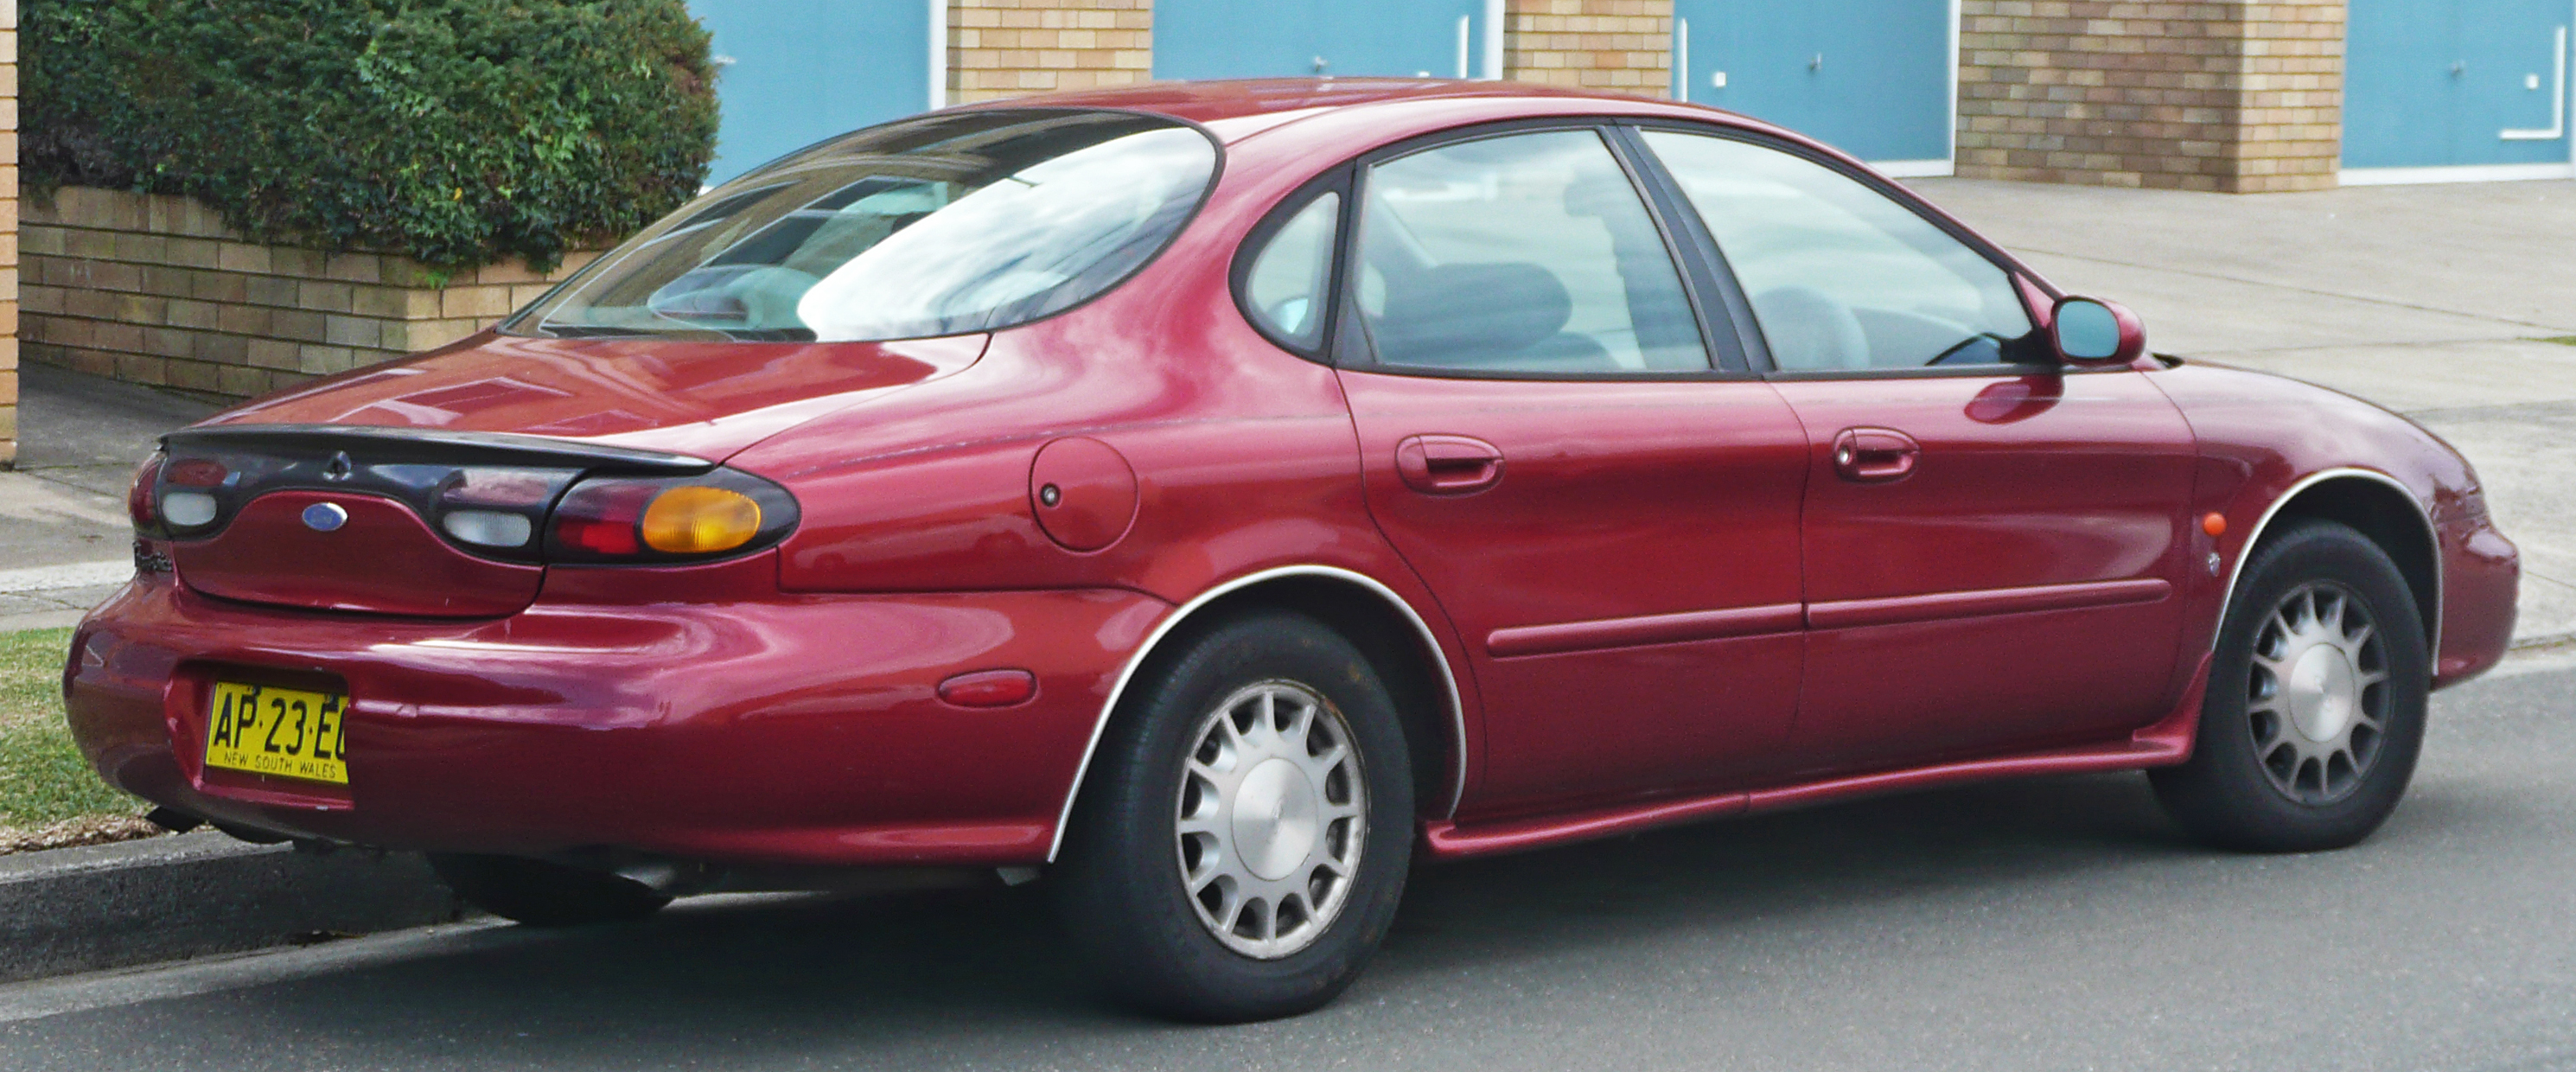 File1996 ford taurus dp ghia sedan 2010 06 17